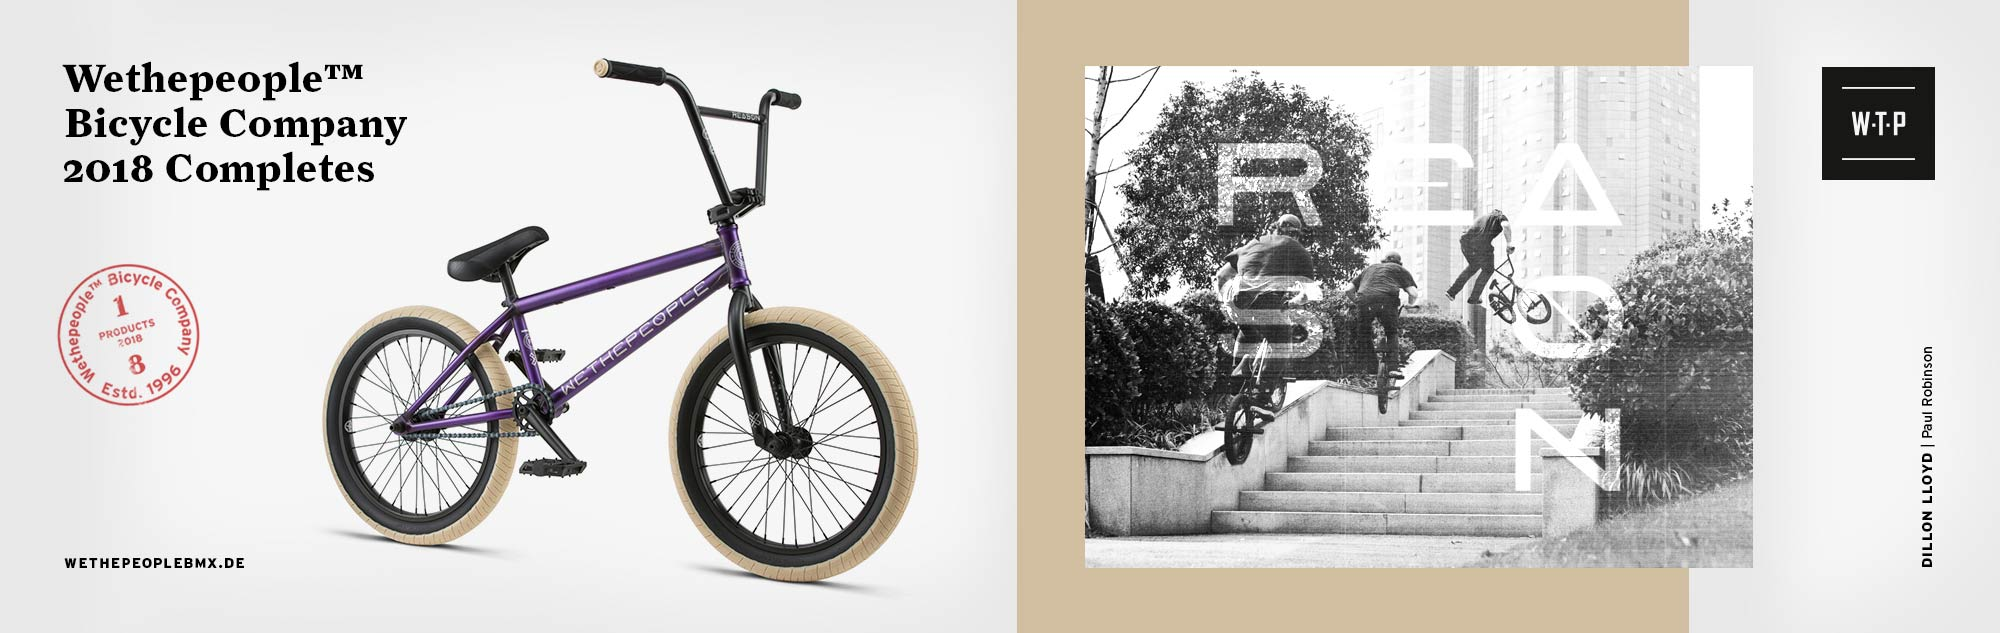 WeThePeople 2018 BMX Biikes at Albe's BMX Bike Shop